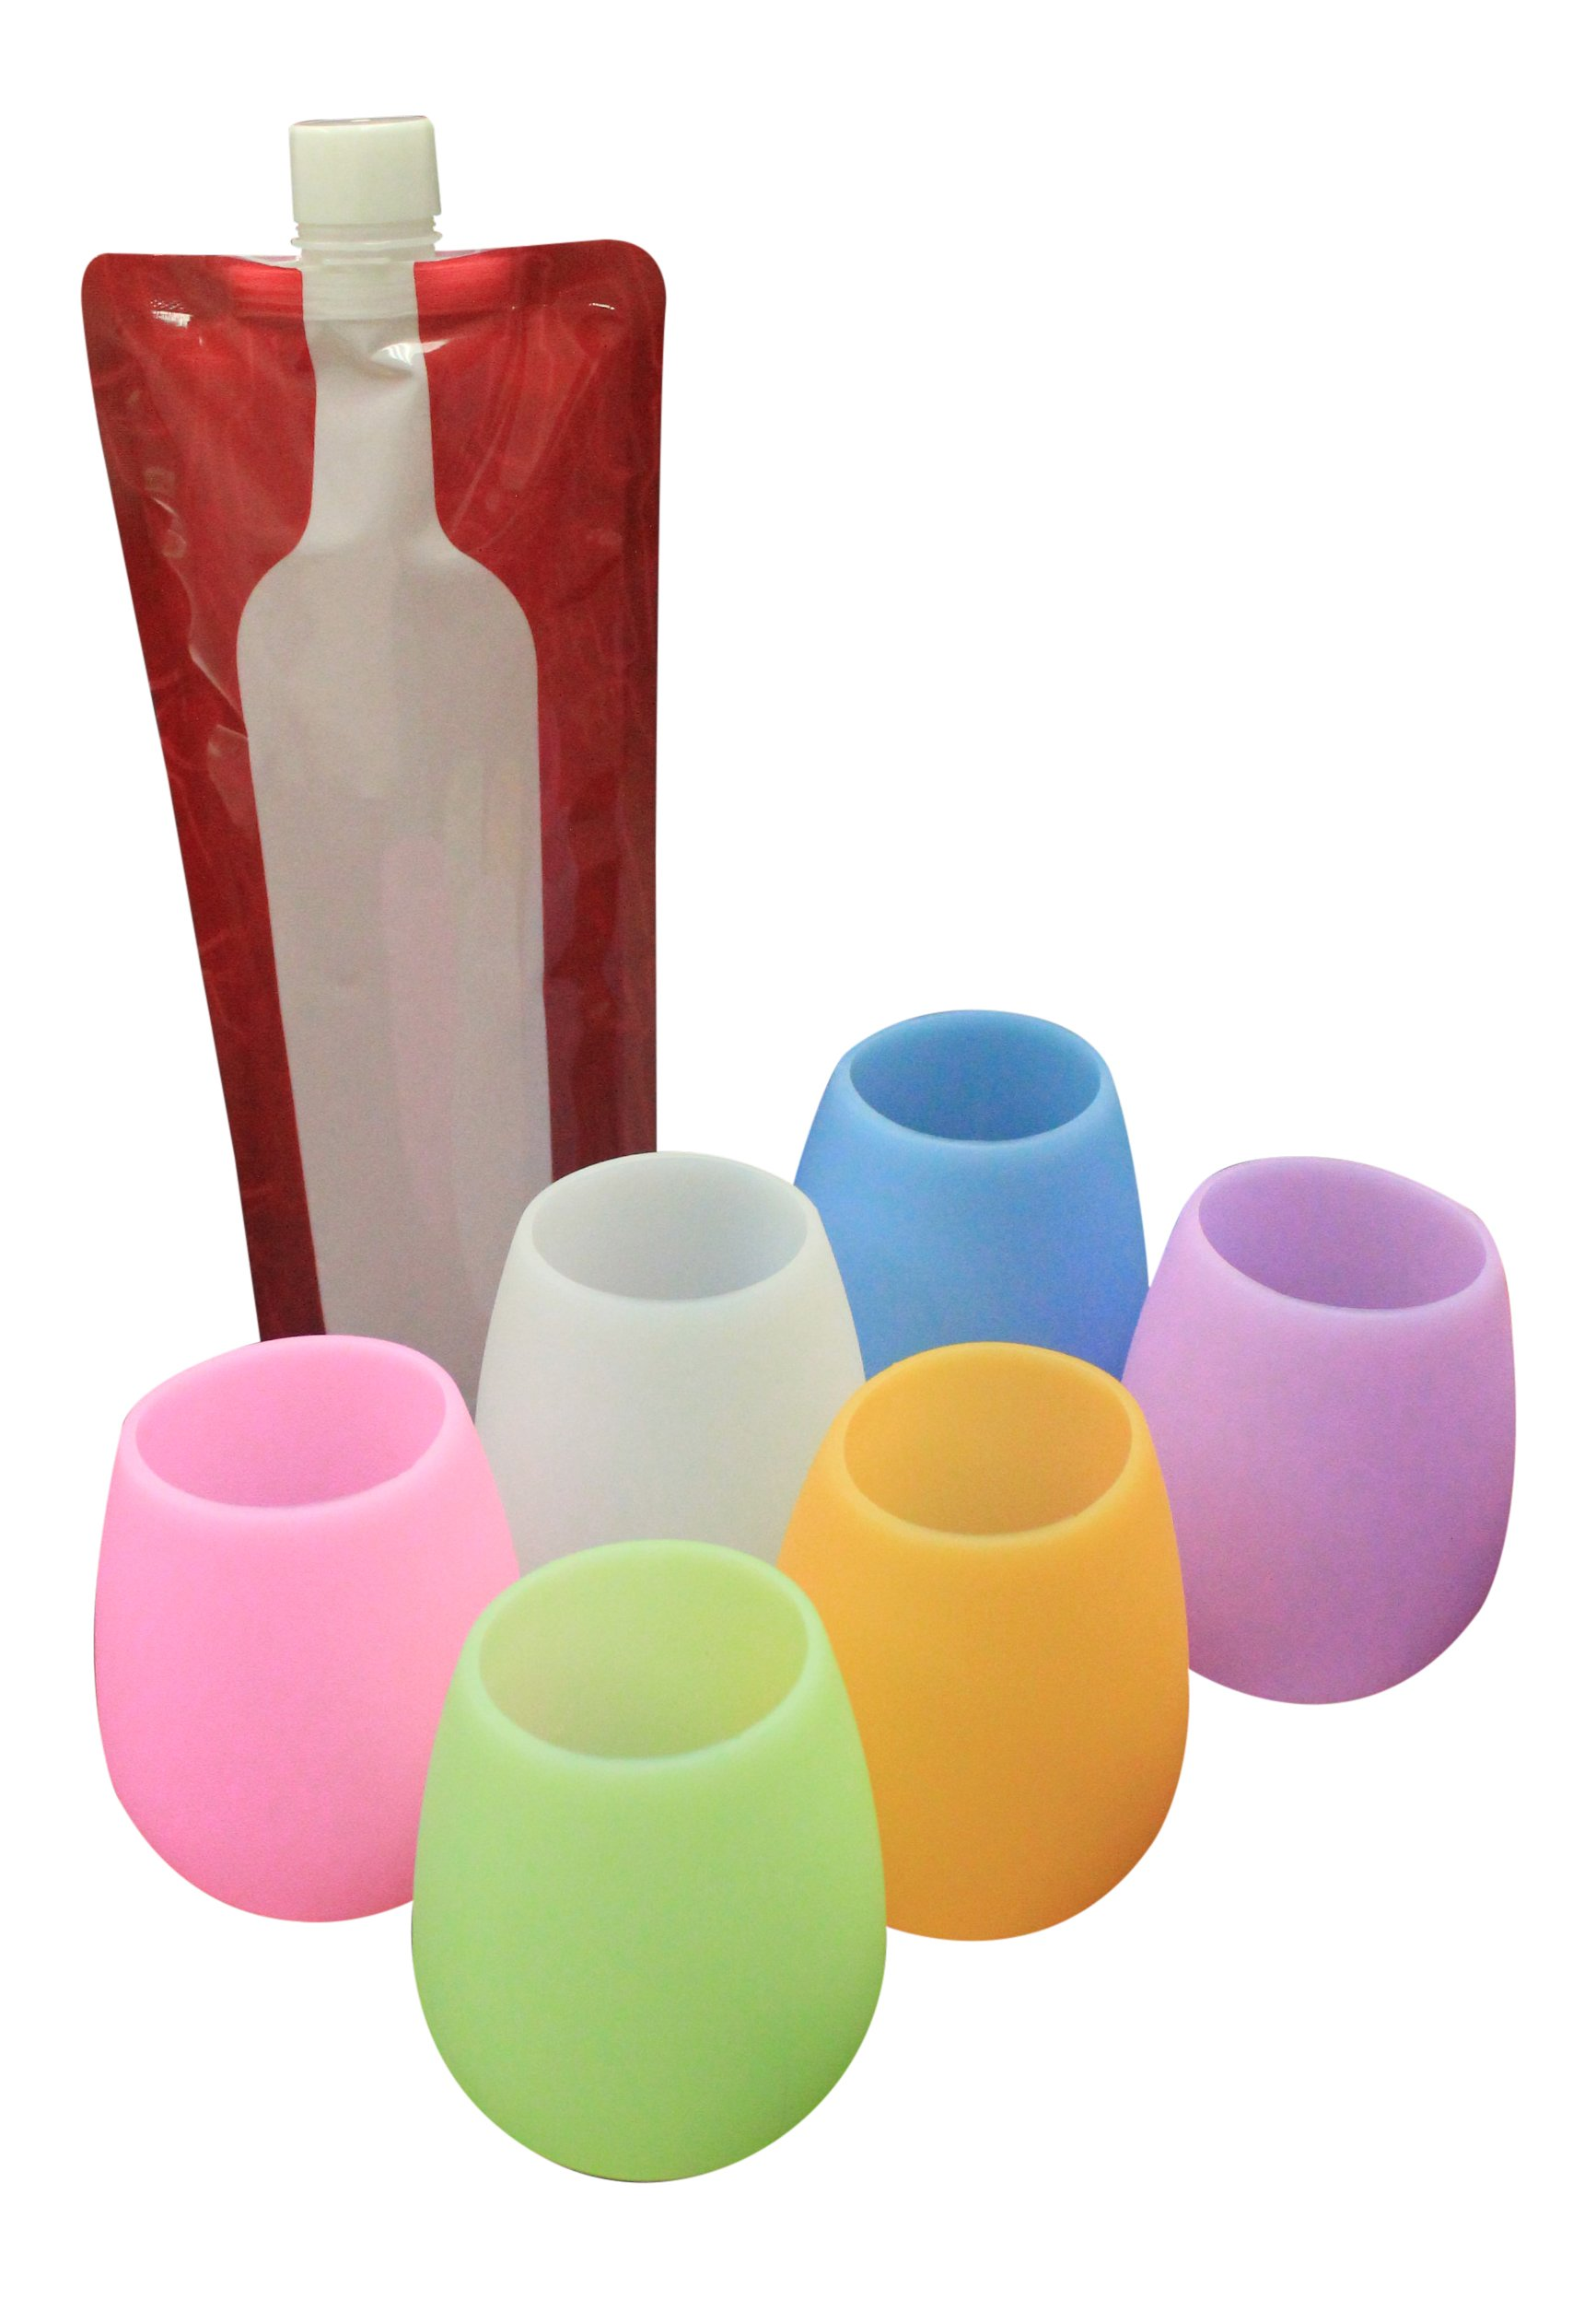 SIX Unbreakable Silicone Cups, Multipurpose Squishy Glasses for Beer, Wine and More, Kid-safe, Pool-safe, Party-safe Drinkware Insulates hot & cold, 12 Oz SIX Pack - FREE Foldable Bottle (Multi)